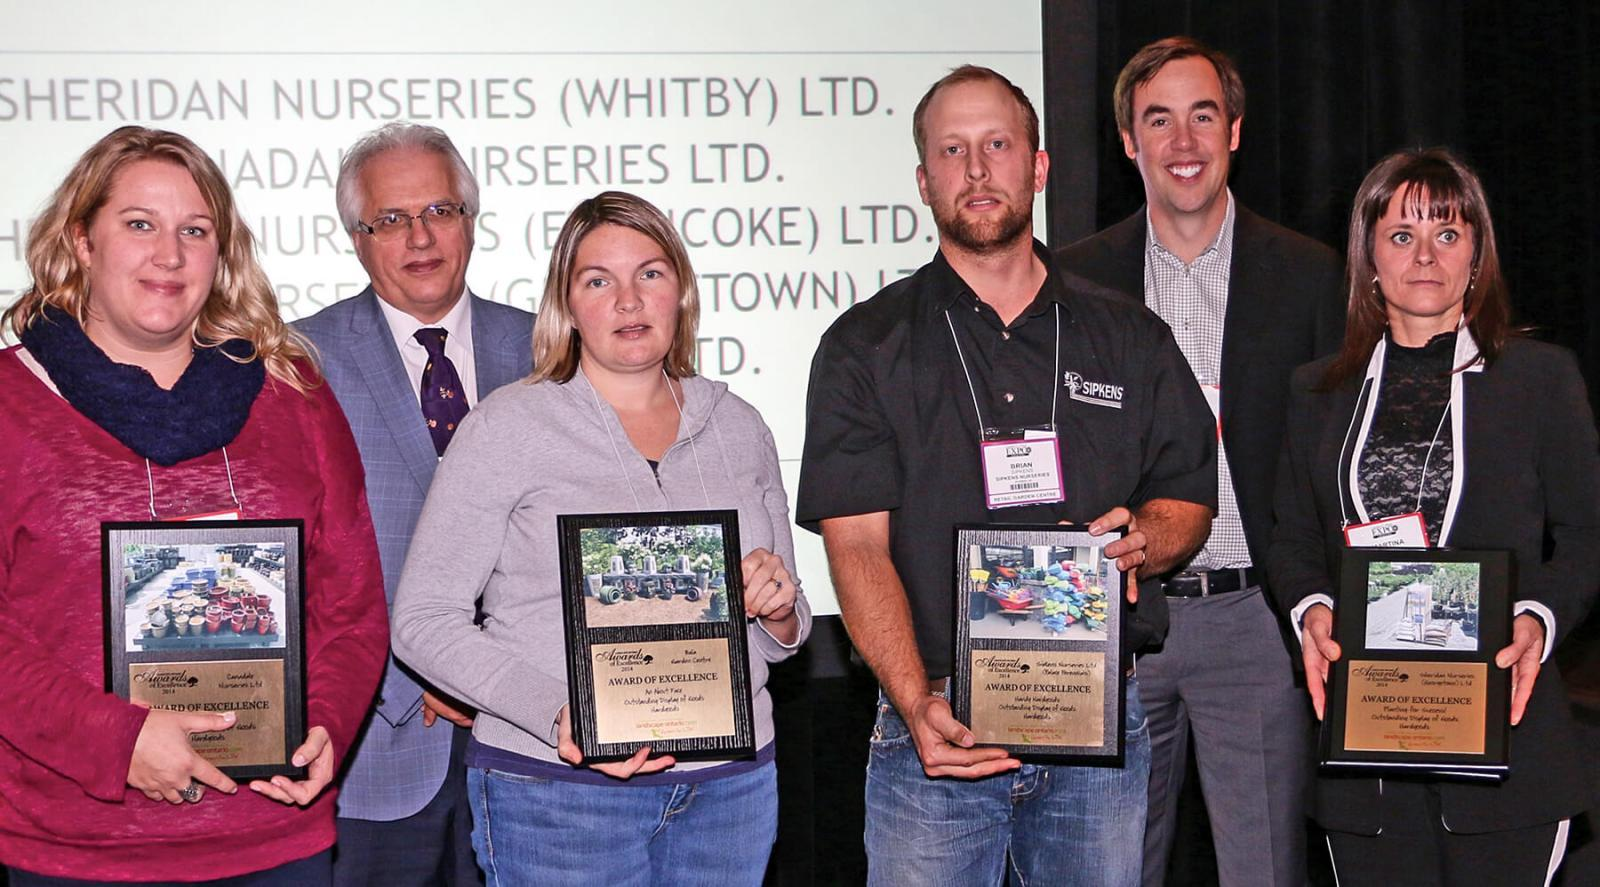 The top garden centres in Ontario were rewarded with the Awards of Excellence at a special presentations during Expo.